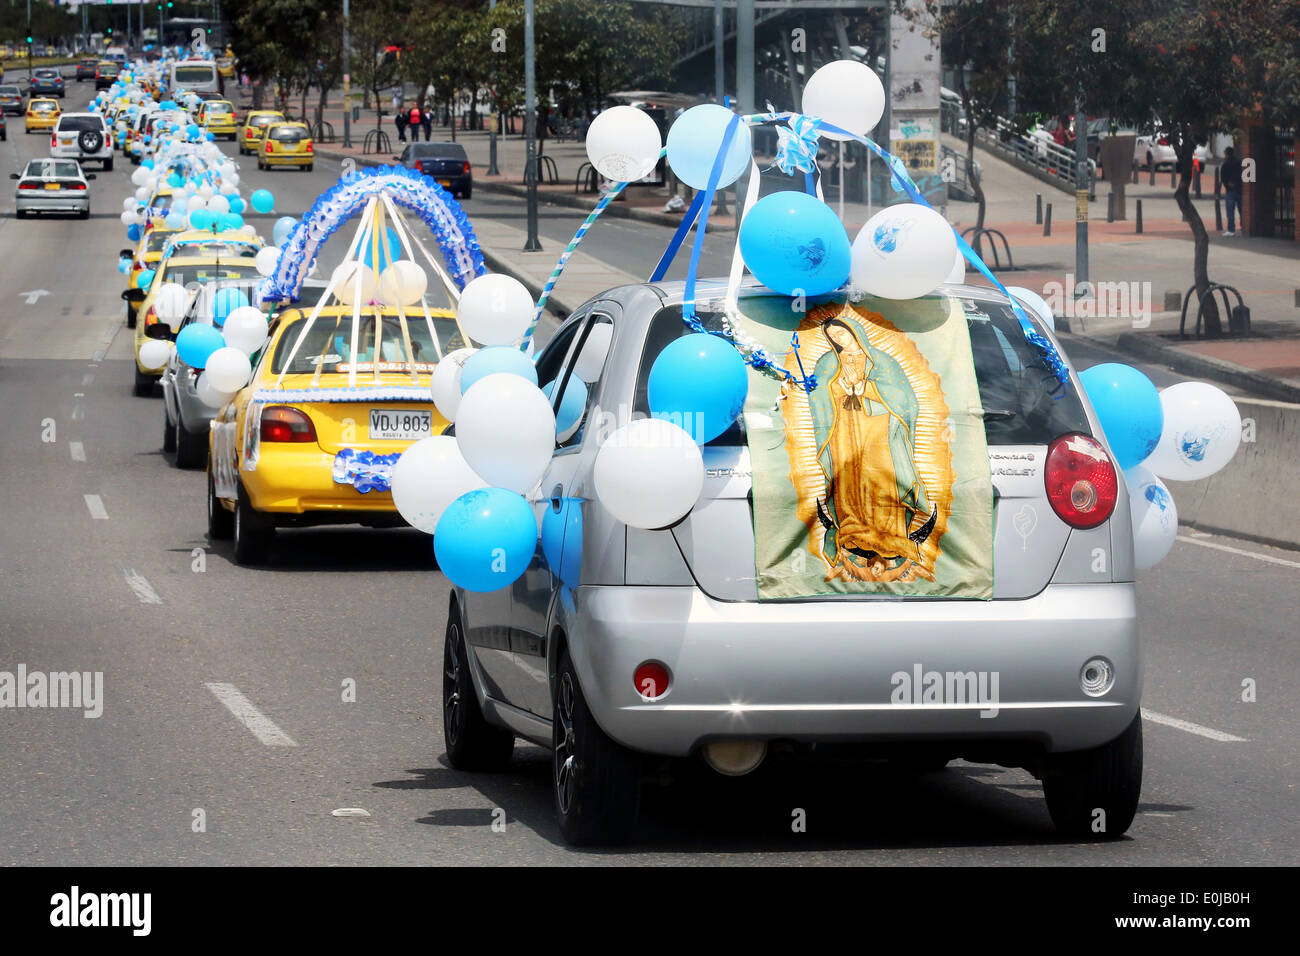 Parade of taxis decorated with balloons and statues of Mother Mary to honour the mother of Jesus Christ. Bogota, Colombia - Stock Image